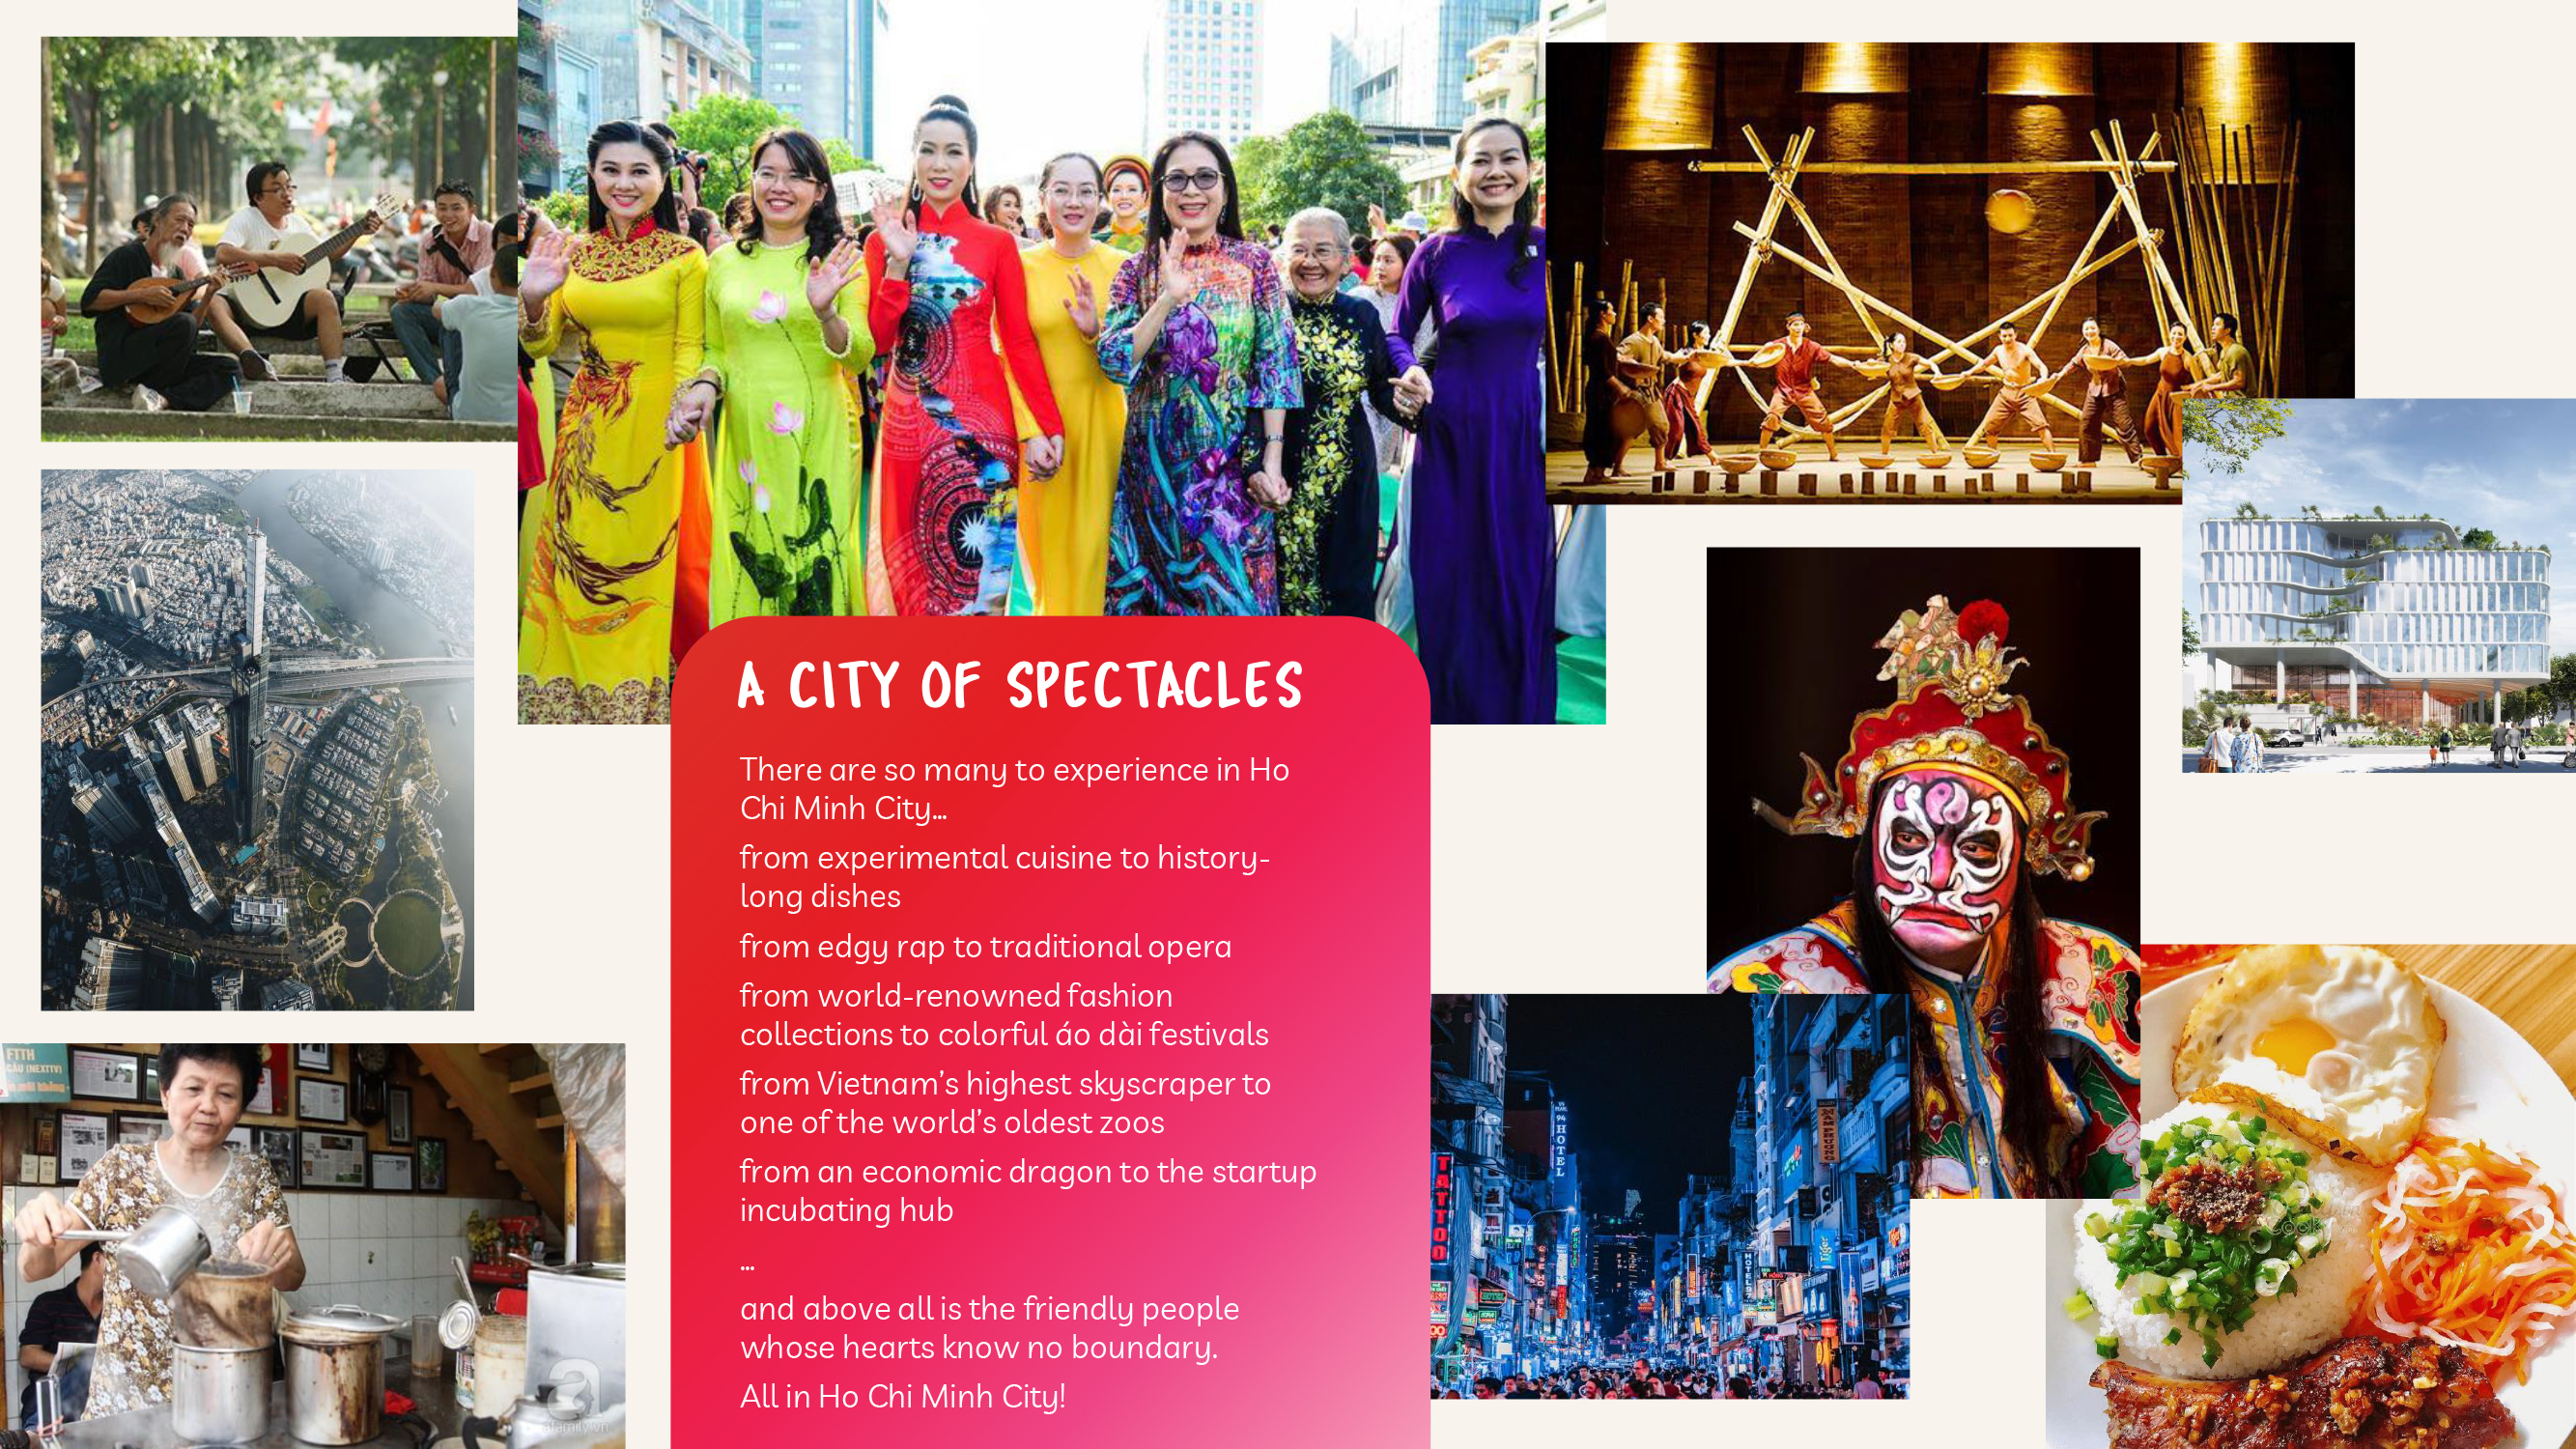 Ho Chi Minh City Goes Global: A city of spectacles